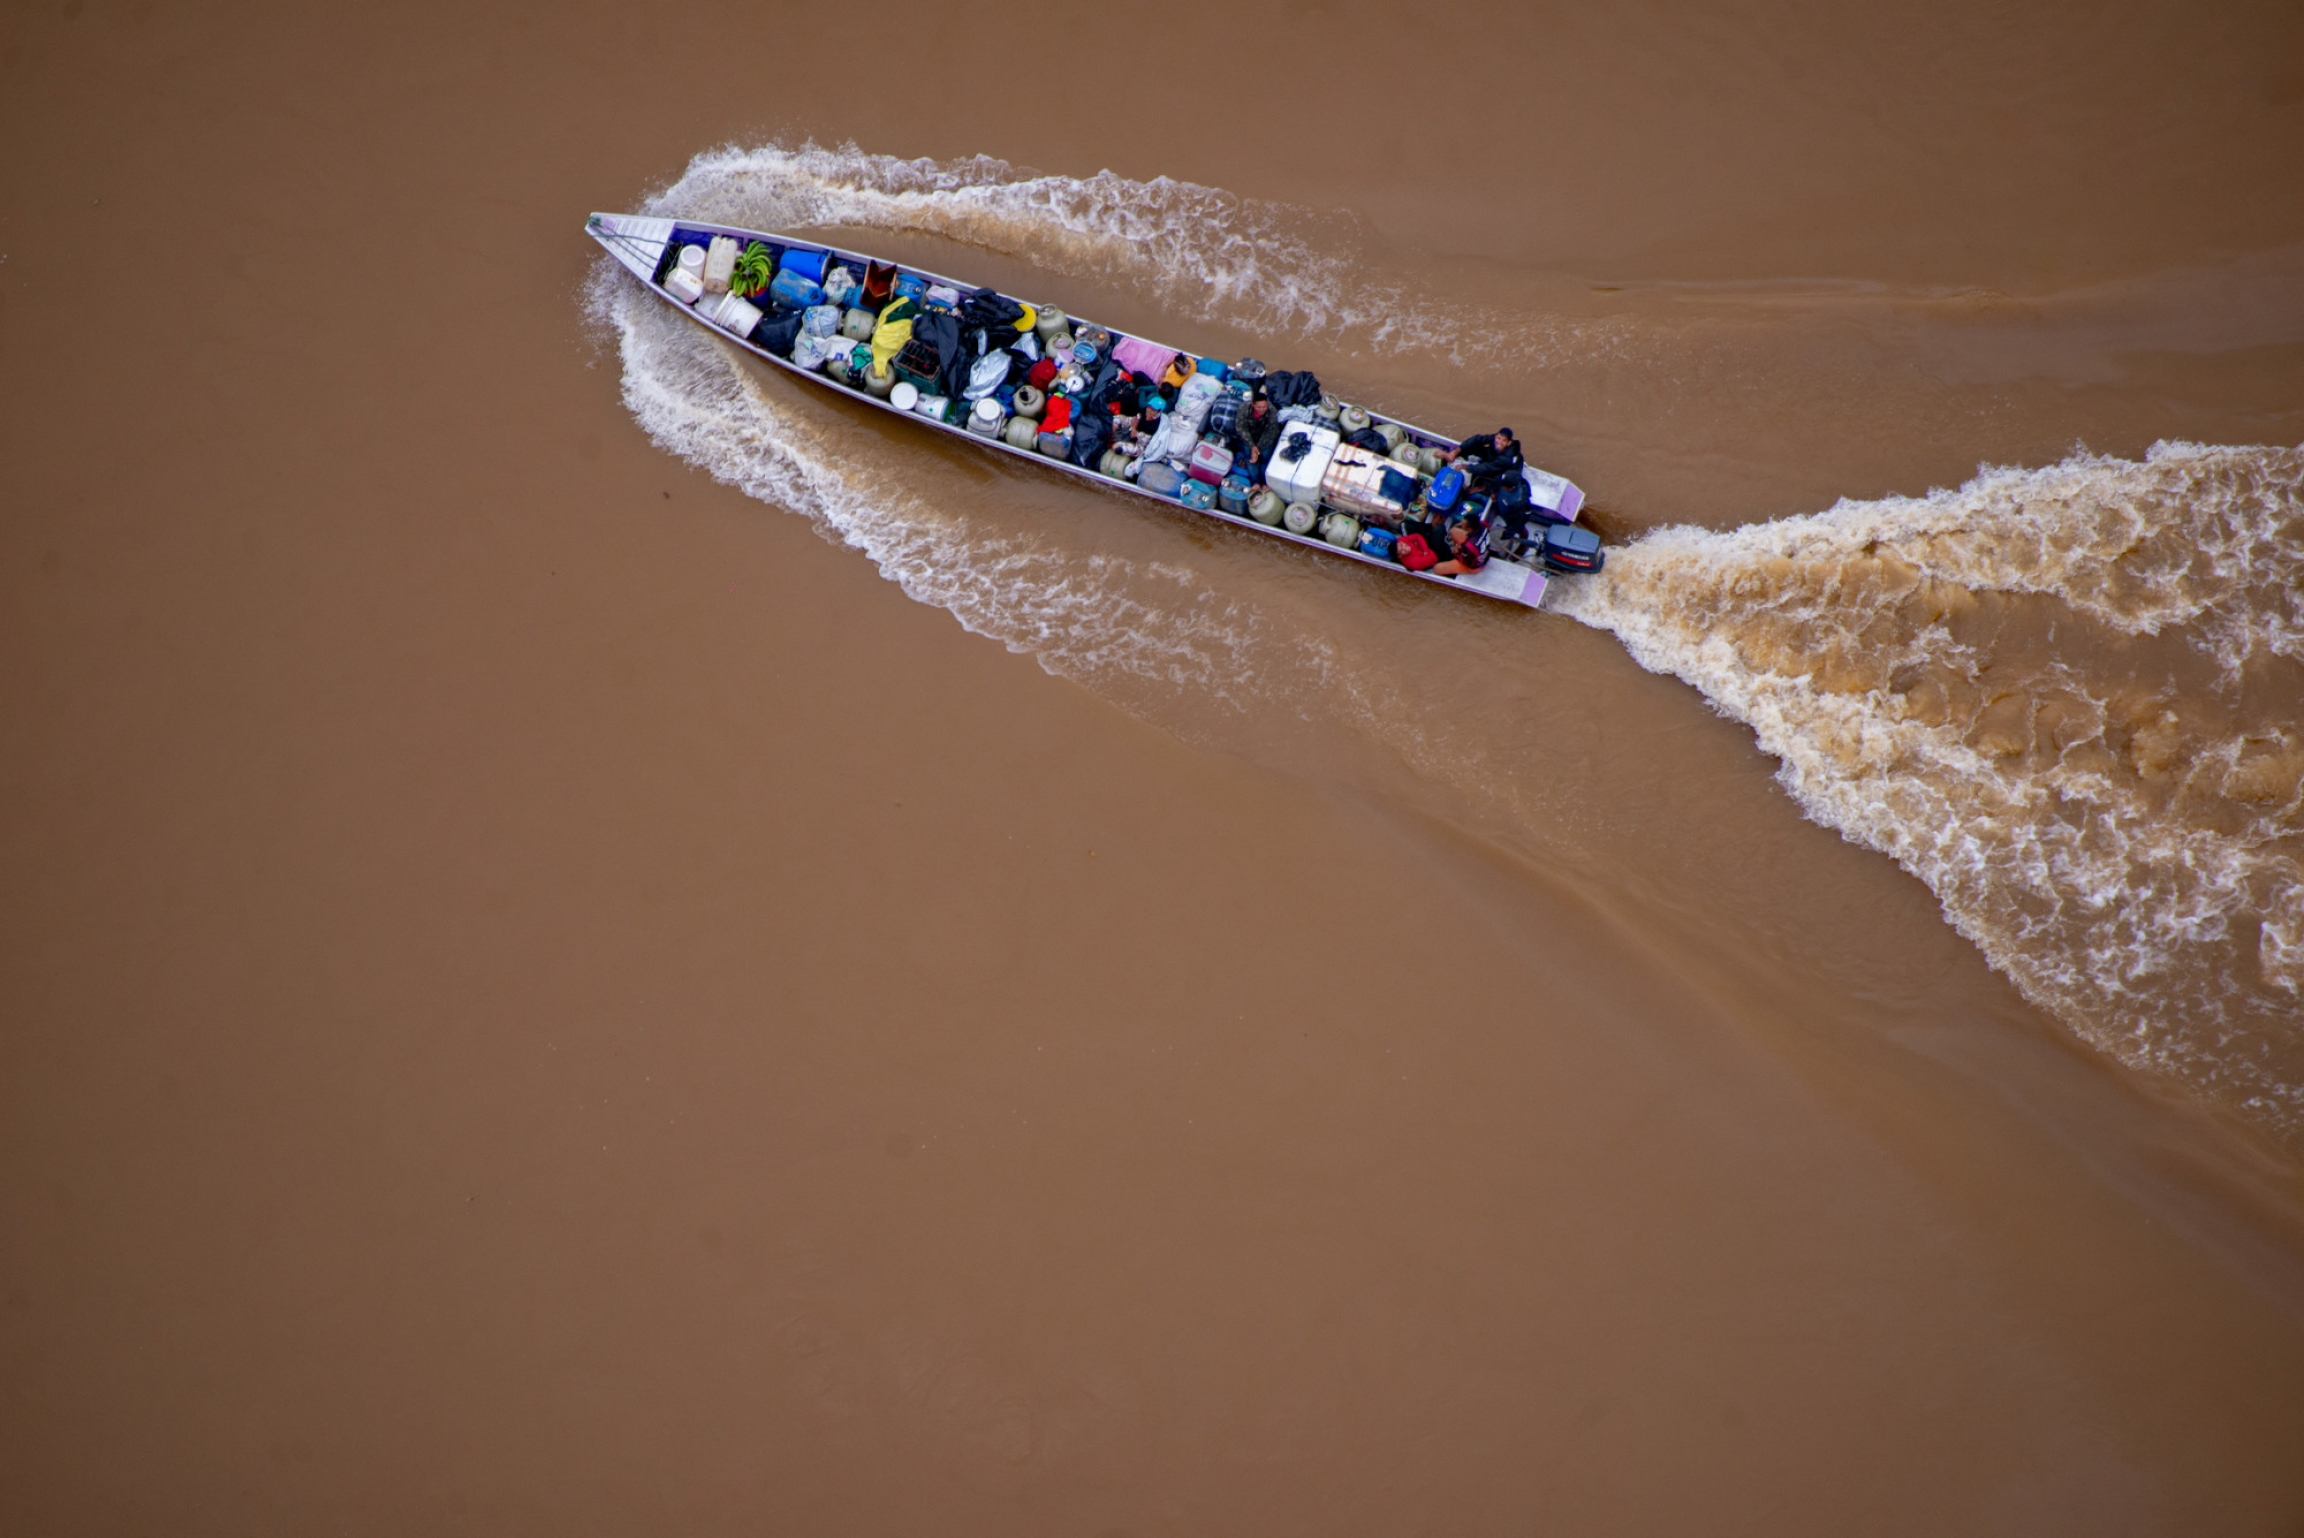 A boat transporting equipment for illegal mining operations in Yanomami Territory.